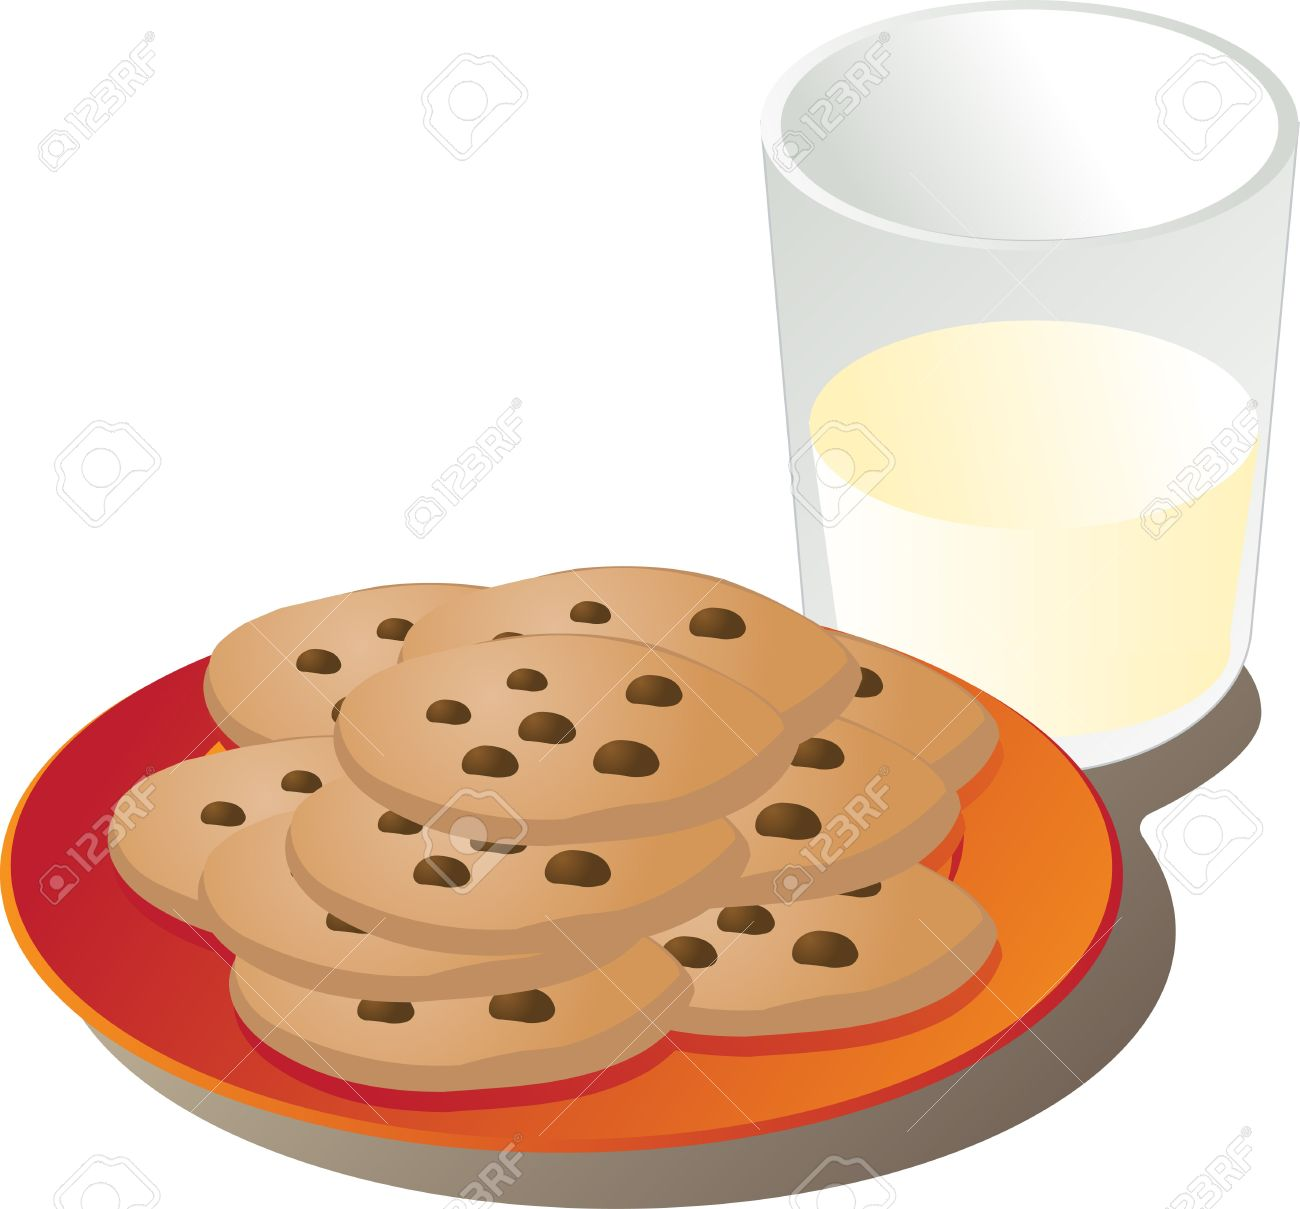 Plate of cookies clipart 7 » Clipart Station.